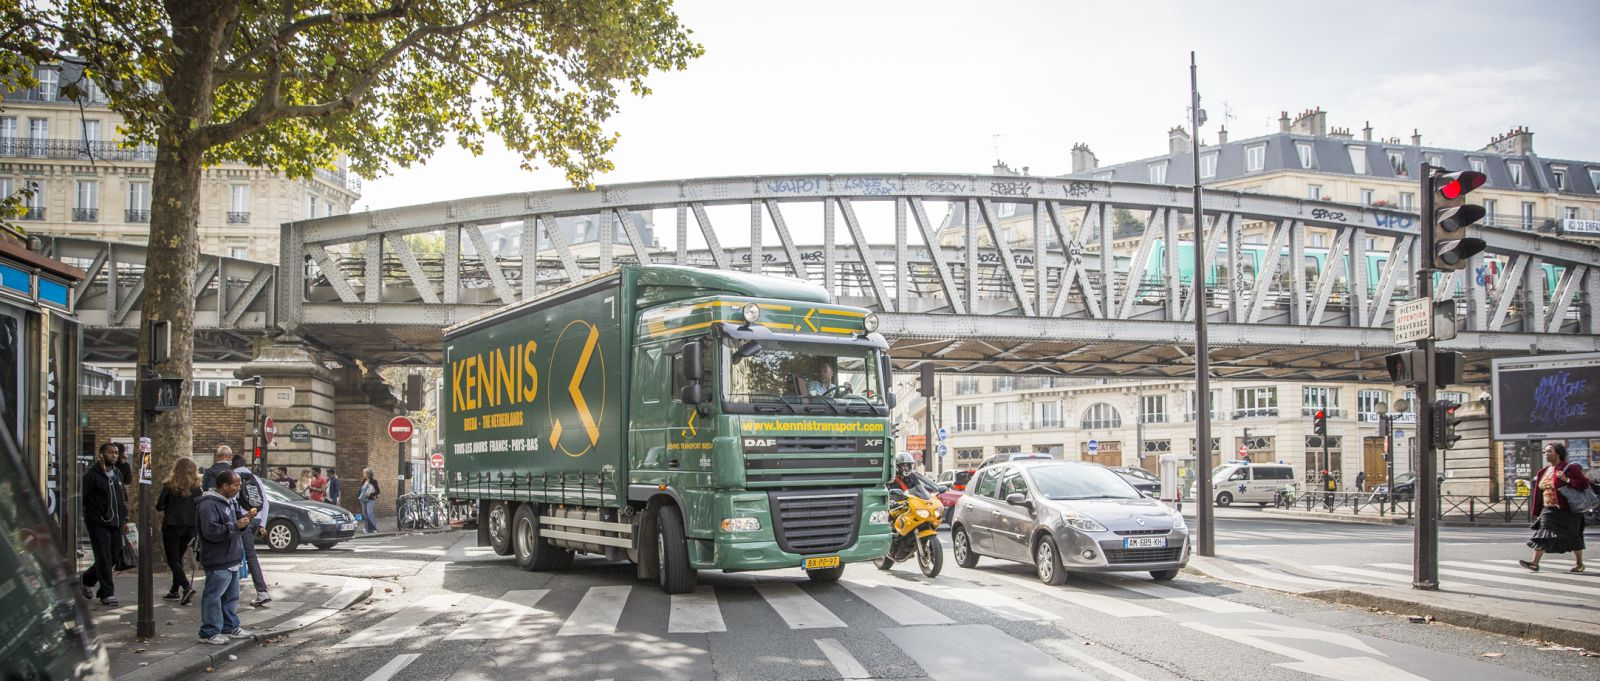 Al 90 jaar distributie in de BENELUX | Kennis Transport